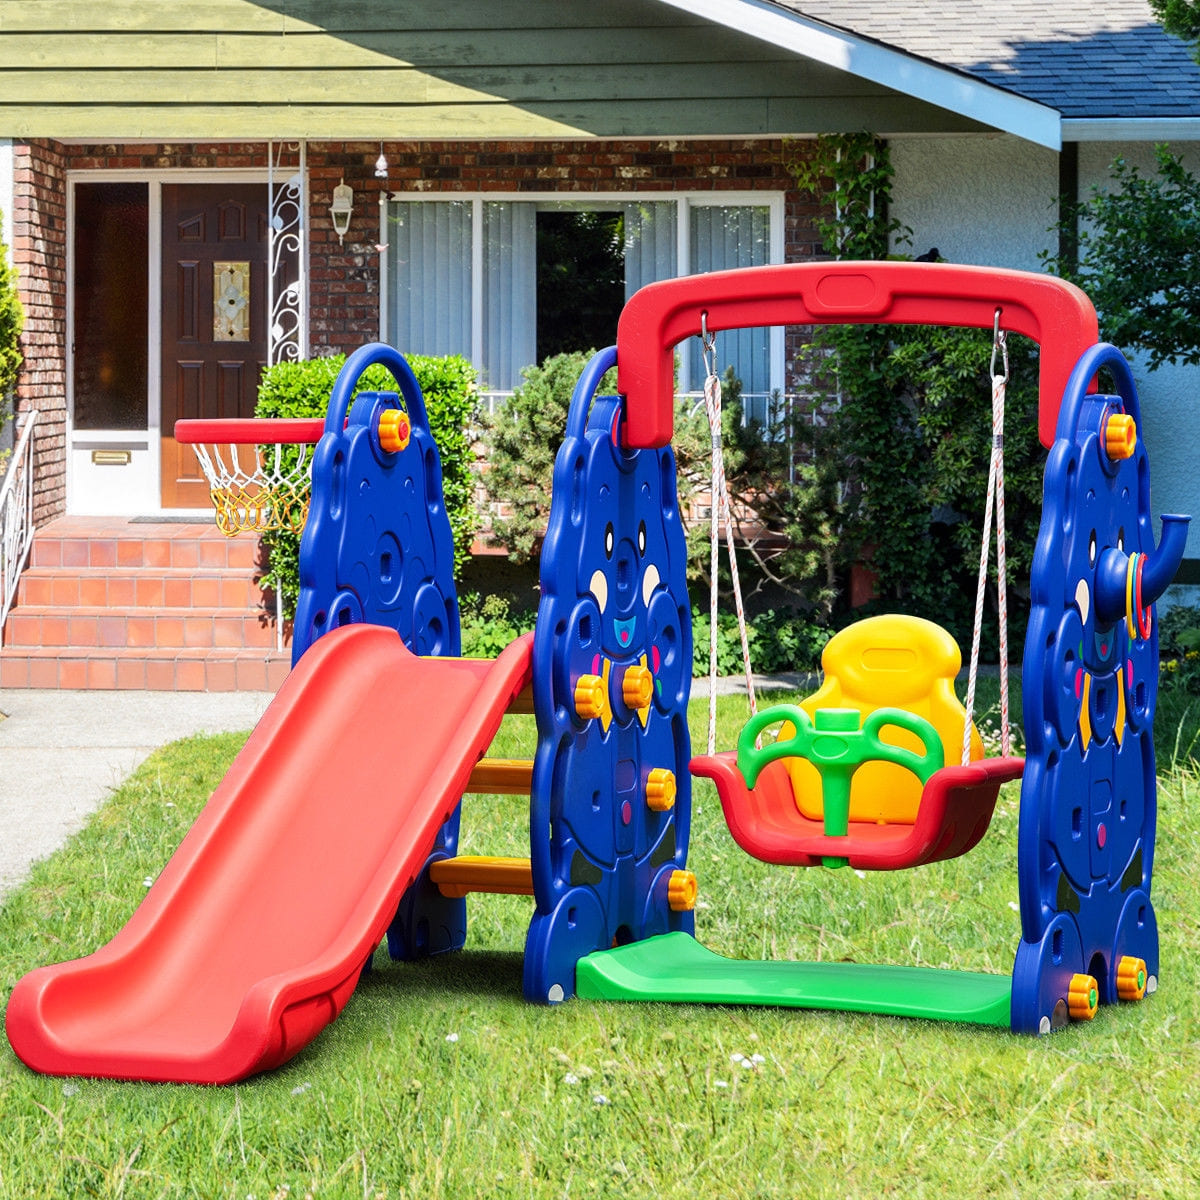 3 in 1 Junior Children Climber Slide Swing Seat Basketball Hoop - FREE SHIPPING